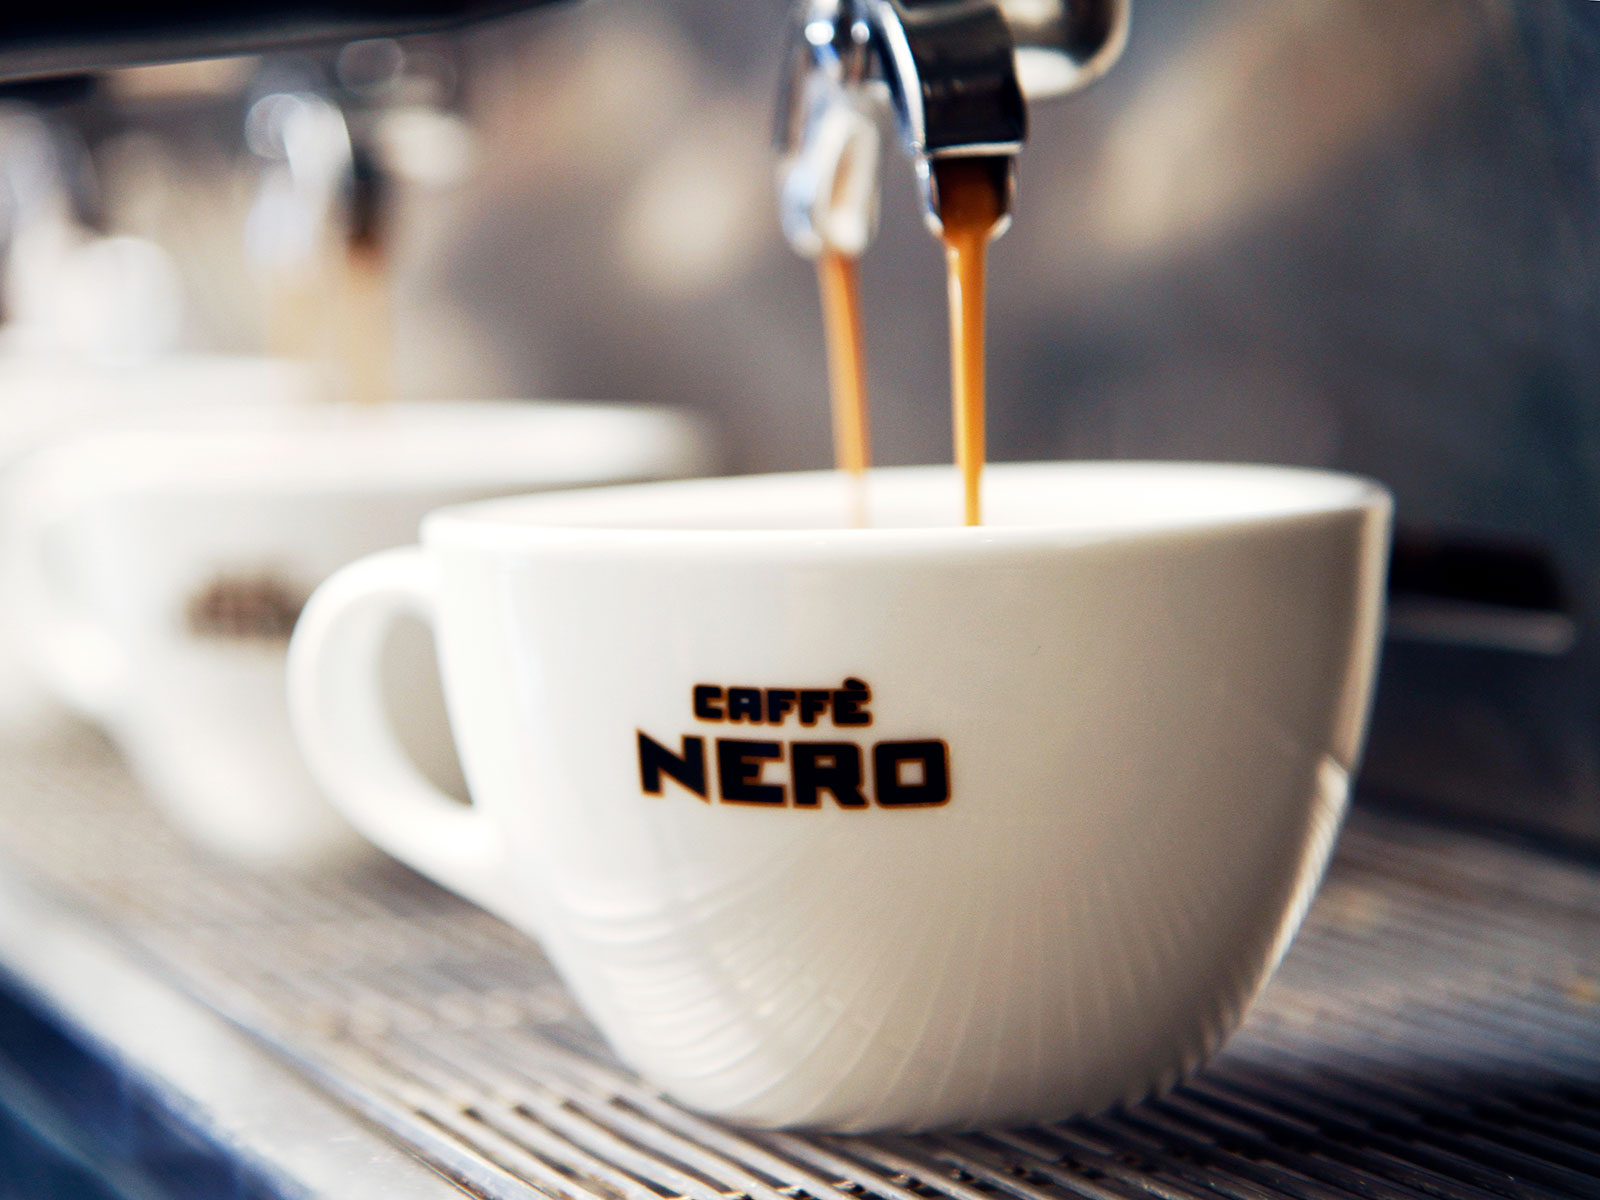 coffee chain in uk The total uk coffee shop market is estimated at 16,501 outlets and continues to show strong sales growth of 64% on last year with £62 billion total turnover according to allegra strategies definitive report, project café13 uk, the branded coffee chain segment recorded £26 billion turnover.